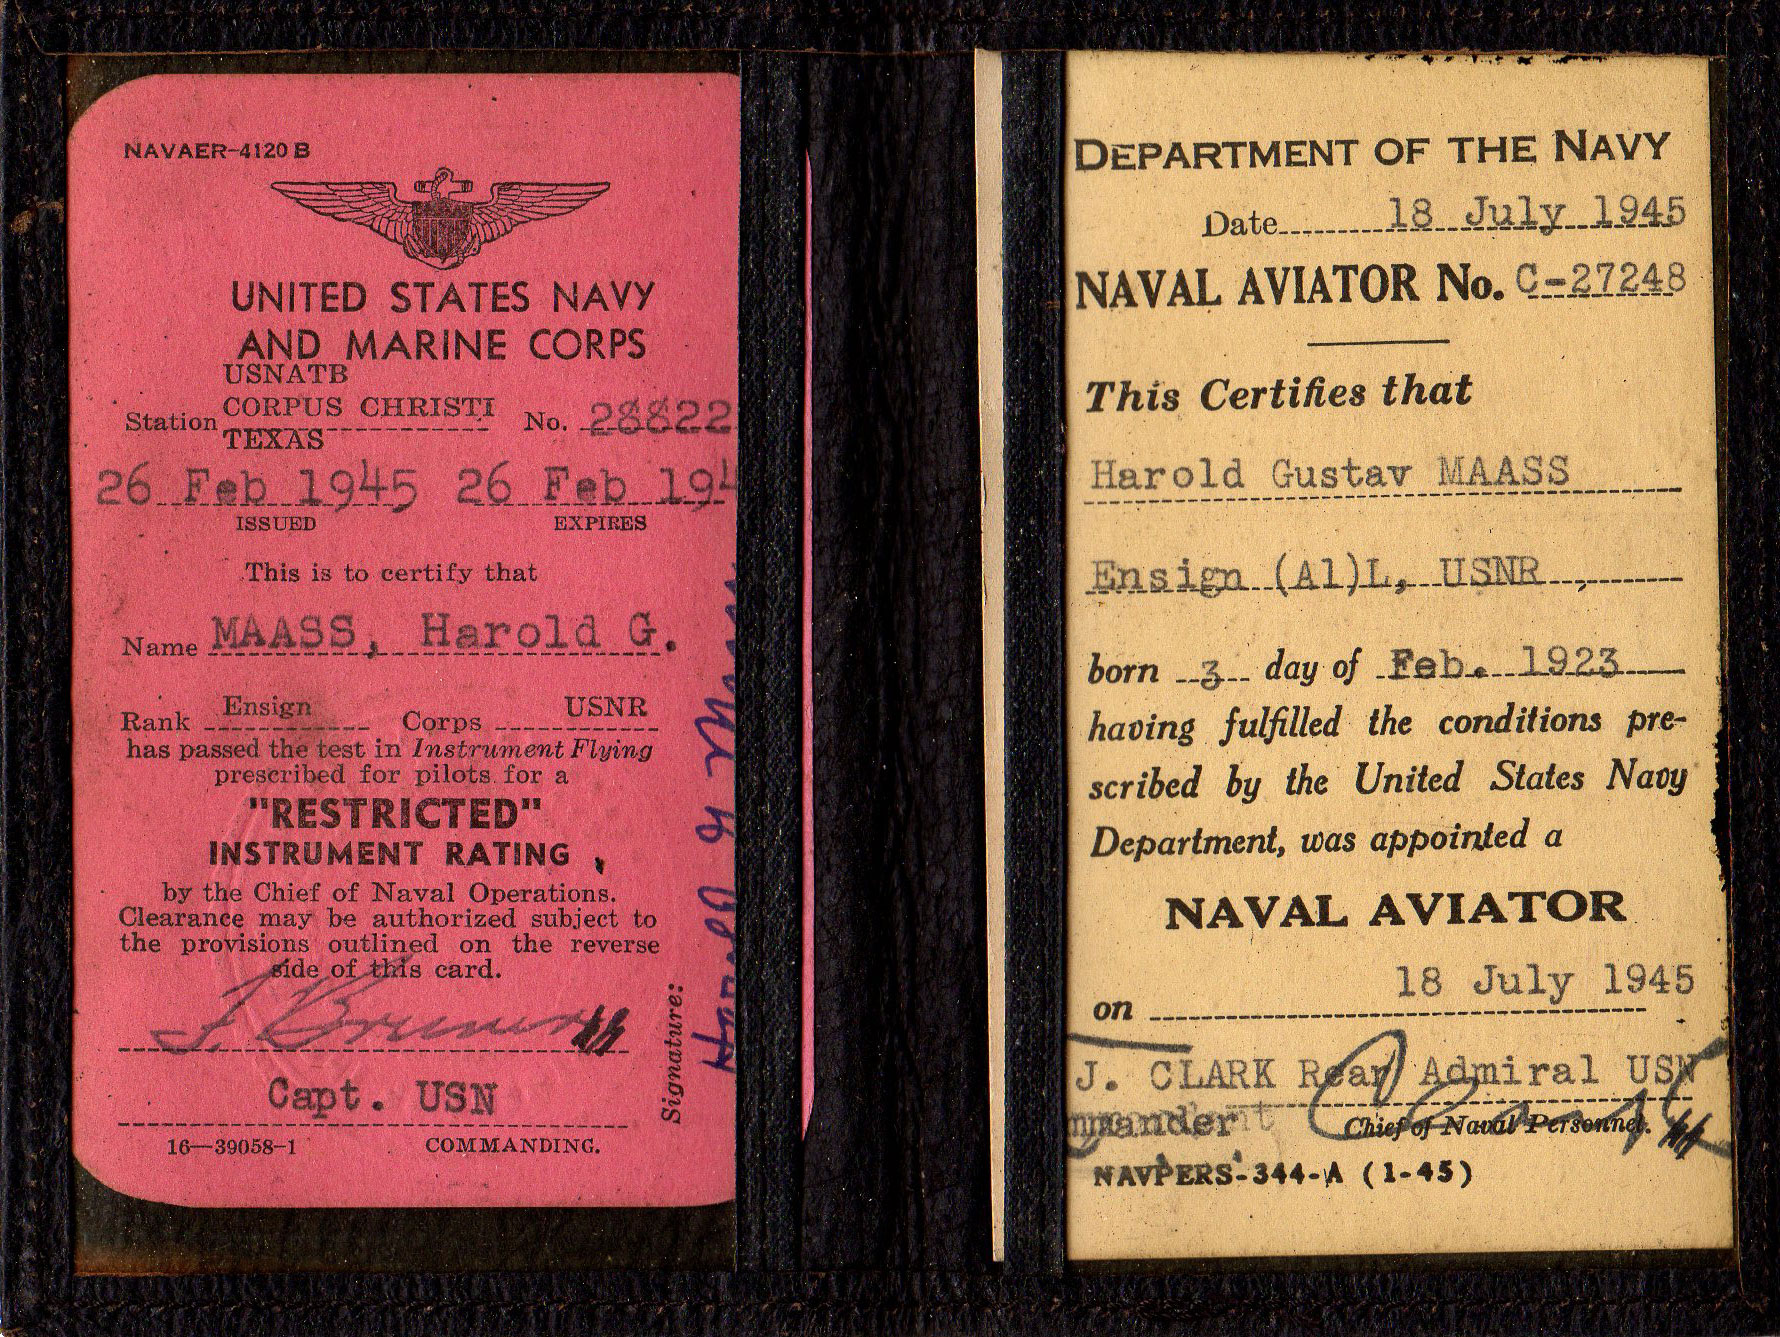 World War II Naval aviator certificate